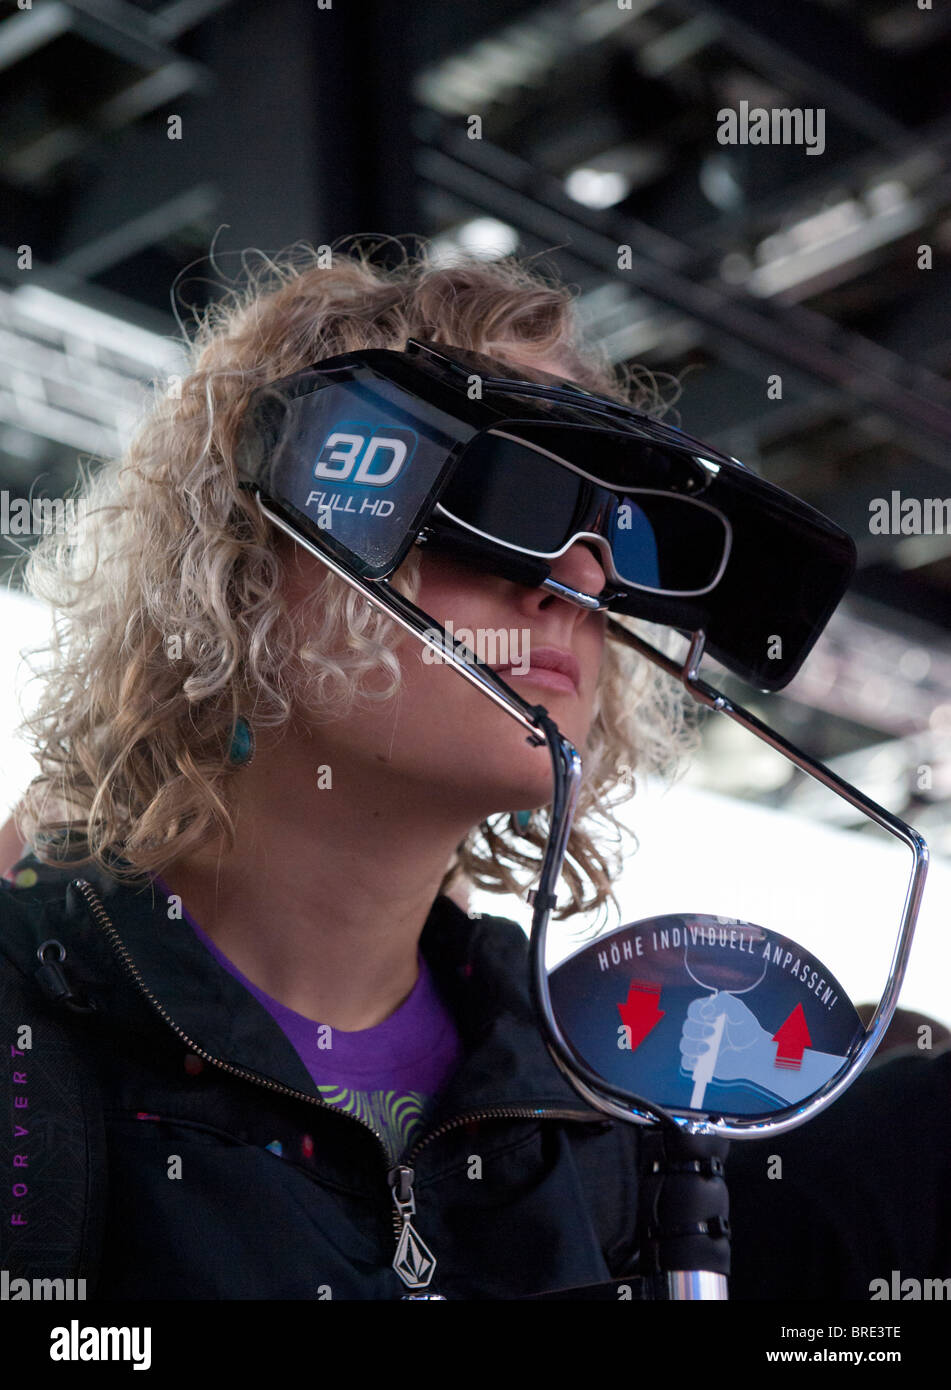 Woman looking at 3D television through 3D glasses at Panasonic stand Photokina digital imaging trade show in Cologne - Stock Image